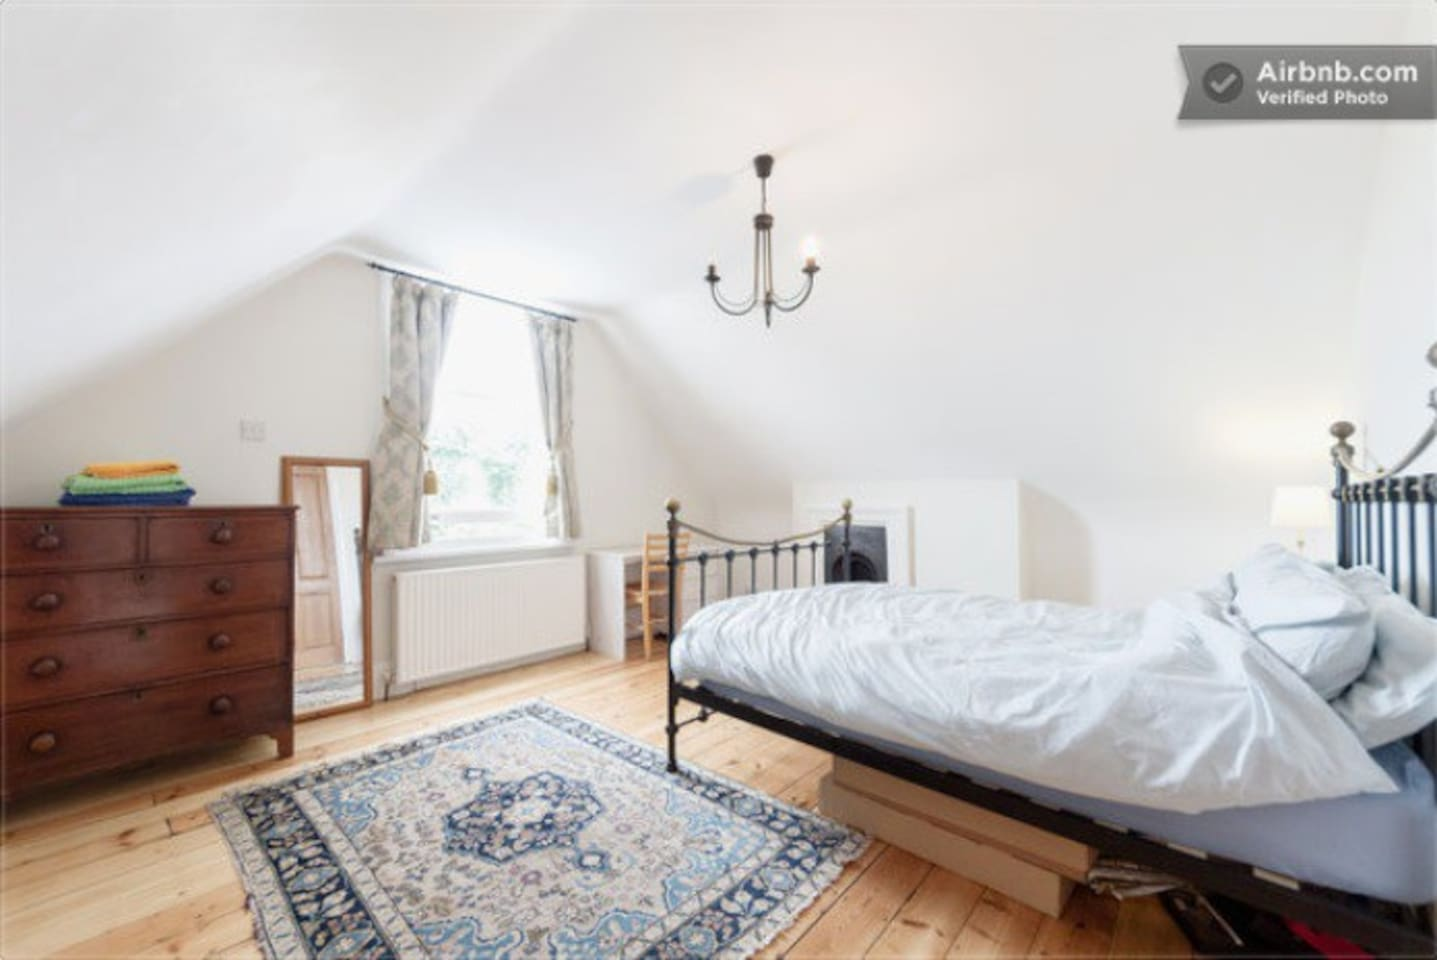 Beautiful top floor bedroom overlooking a quiet street